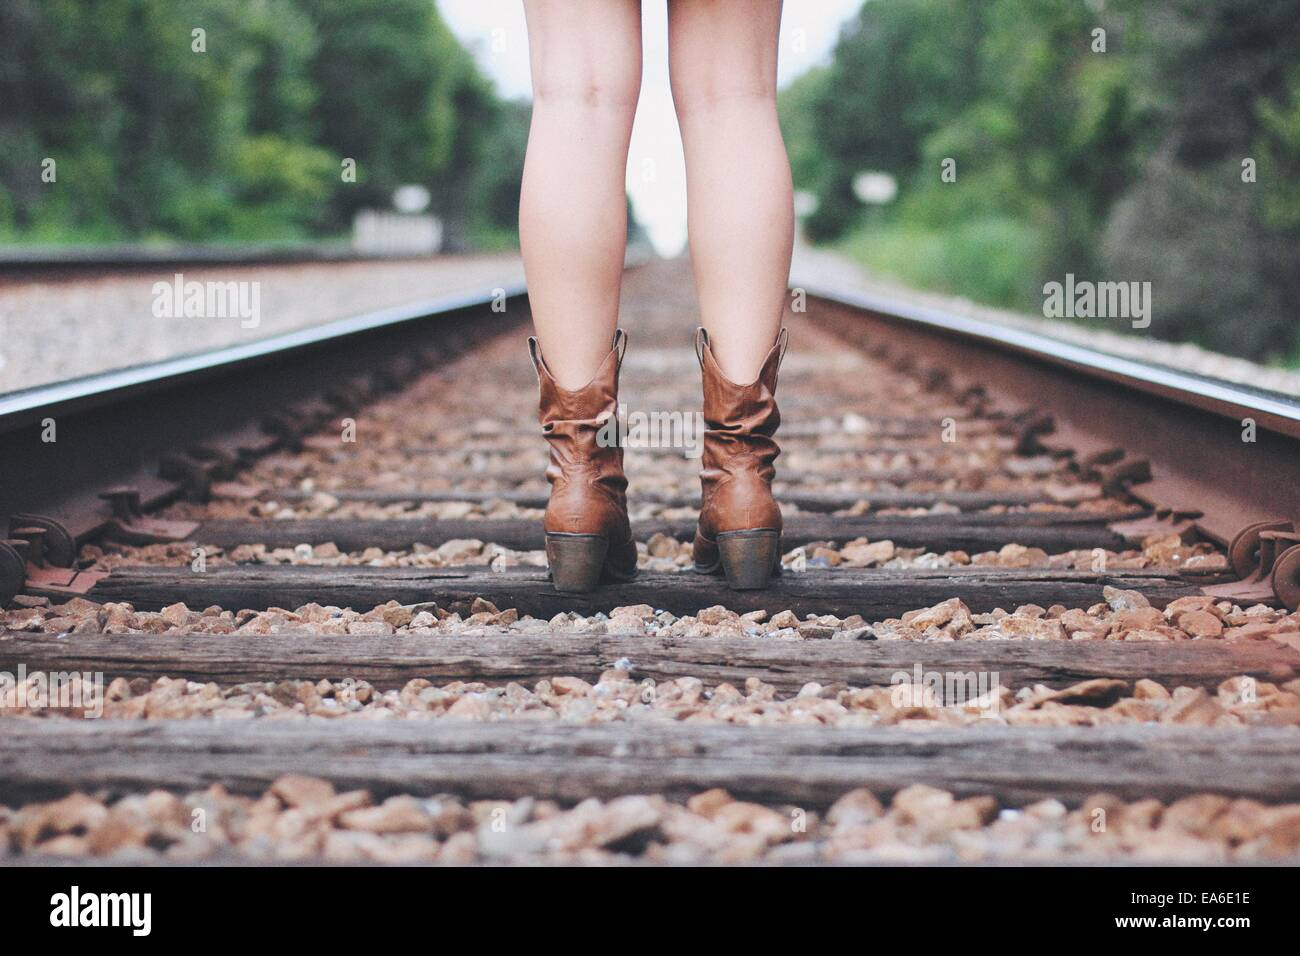 Young woman in boots standing on train tracks - Stock Image